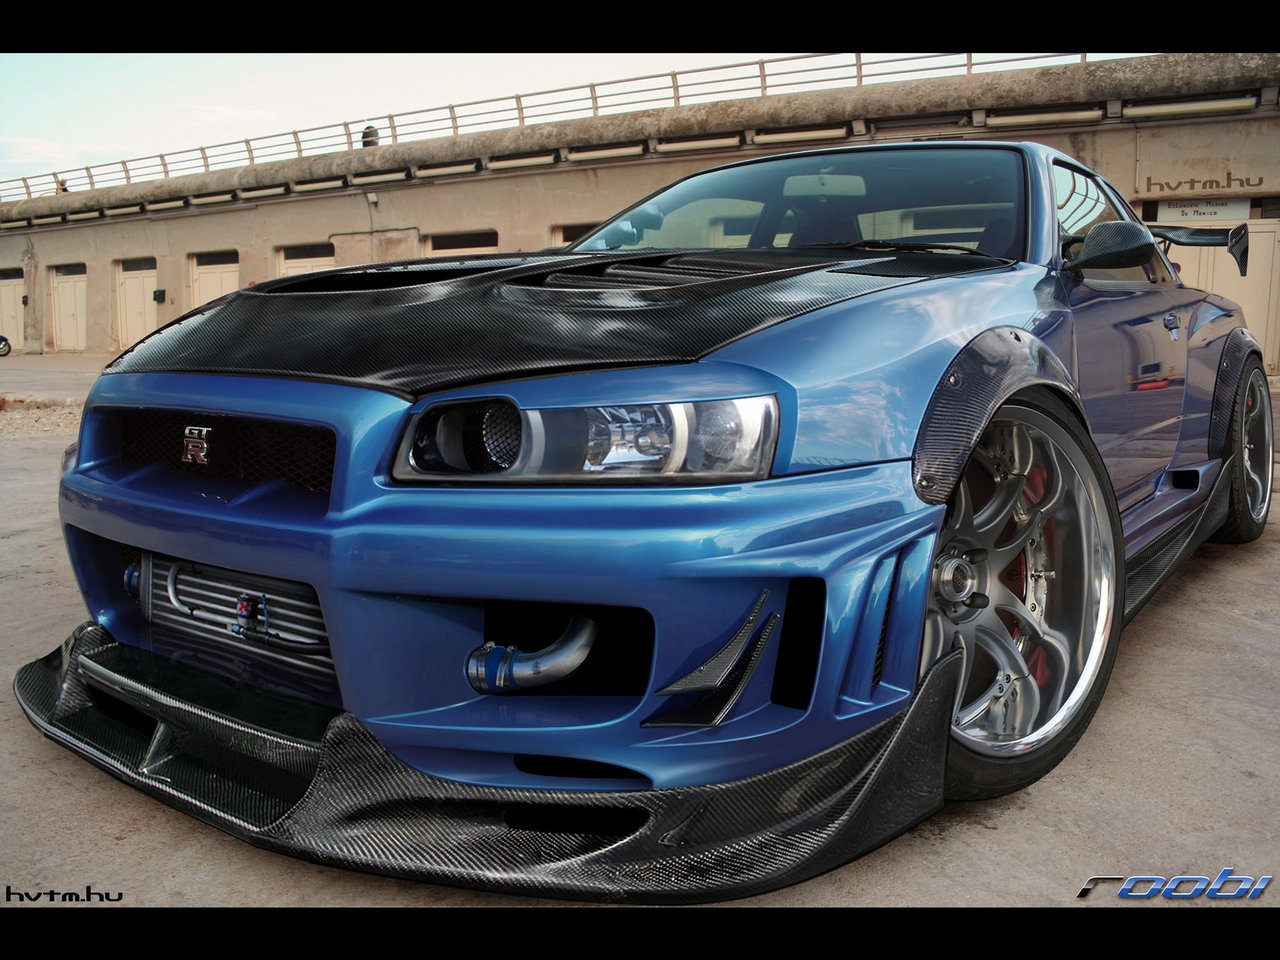 nissan skyline gtr wallpapers. Black Bedroom Furniture Sets. Home Design Ideas